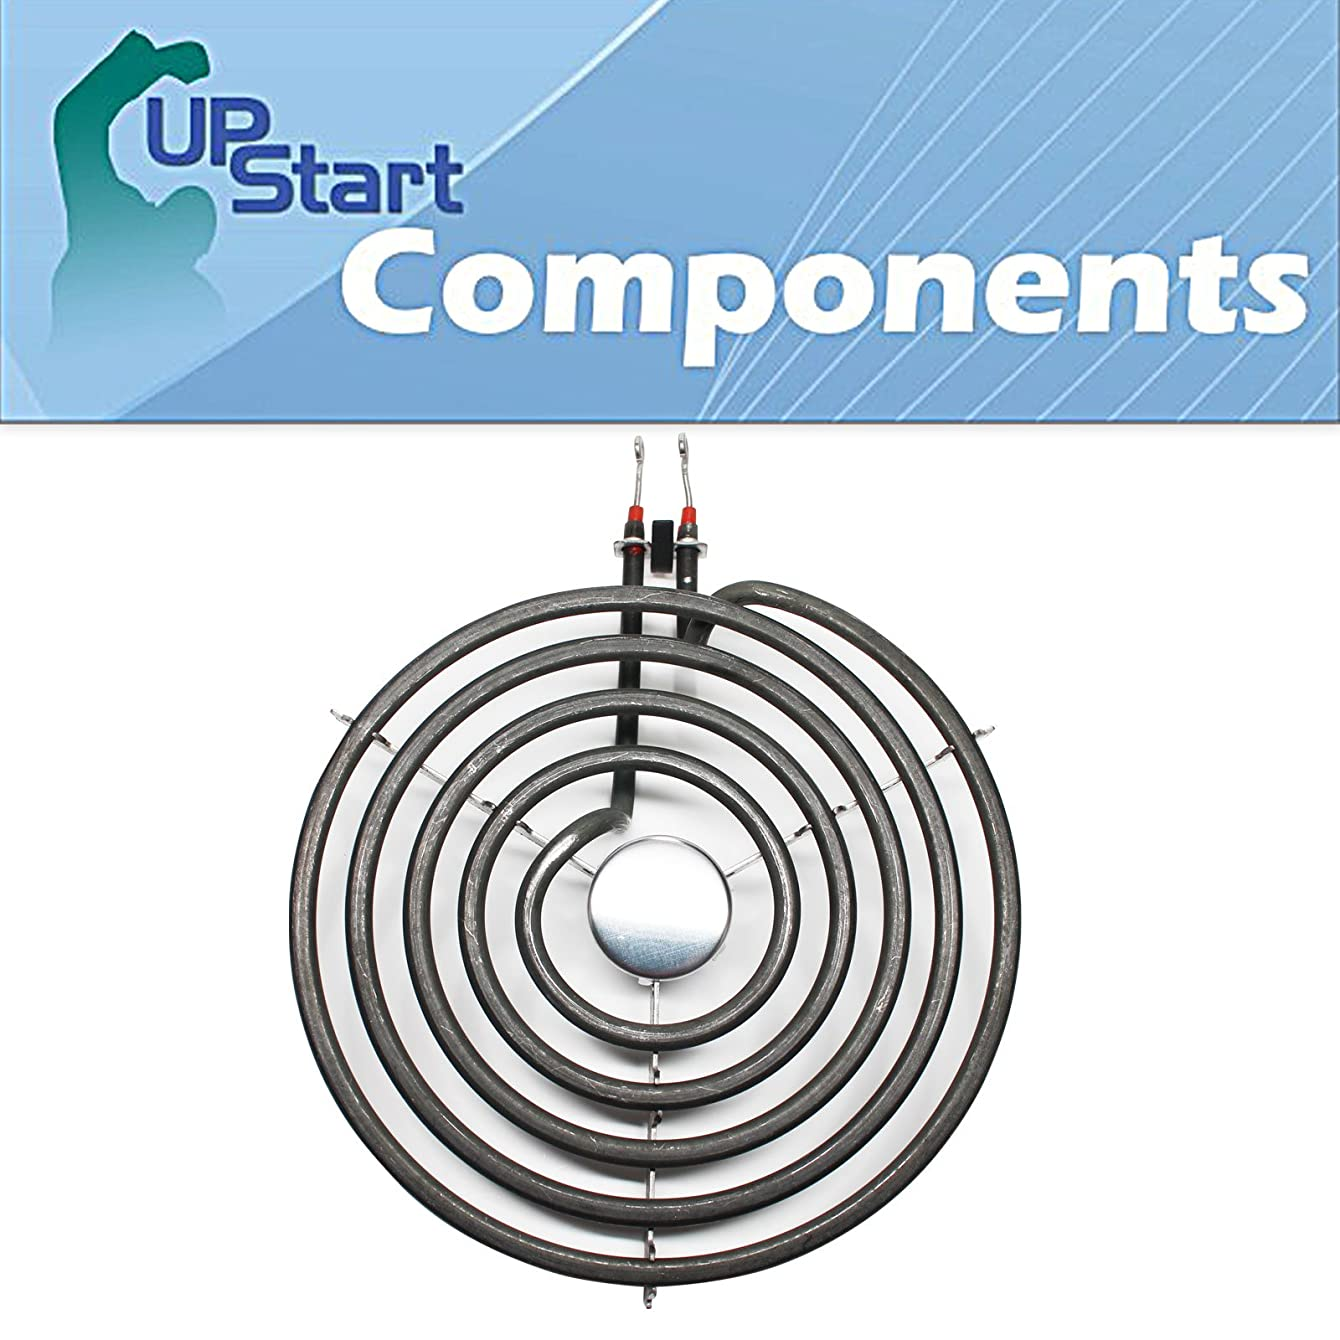 Replacement Whirlpool YGY395LXGQ2 8 inch 5 Turns Surface Burner Element - Compatible Whirlpool 9761345 Heating Element for Range, Stove & Cooktop